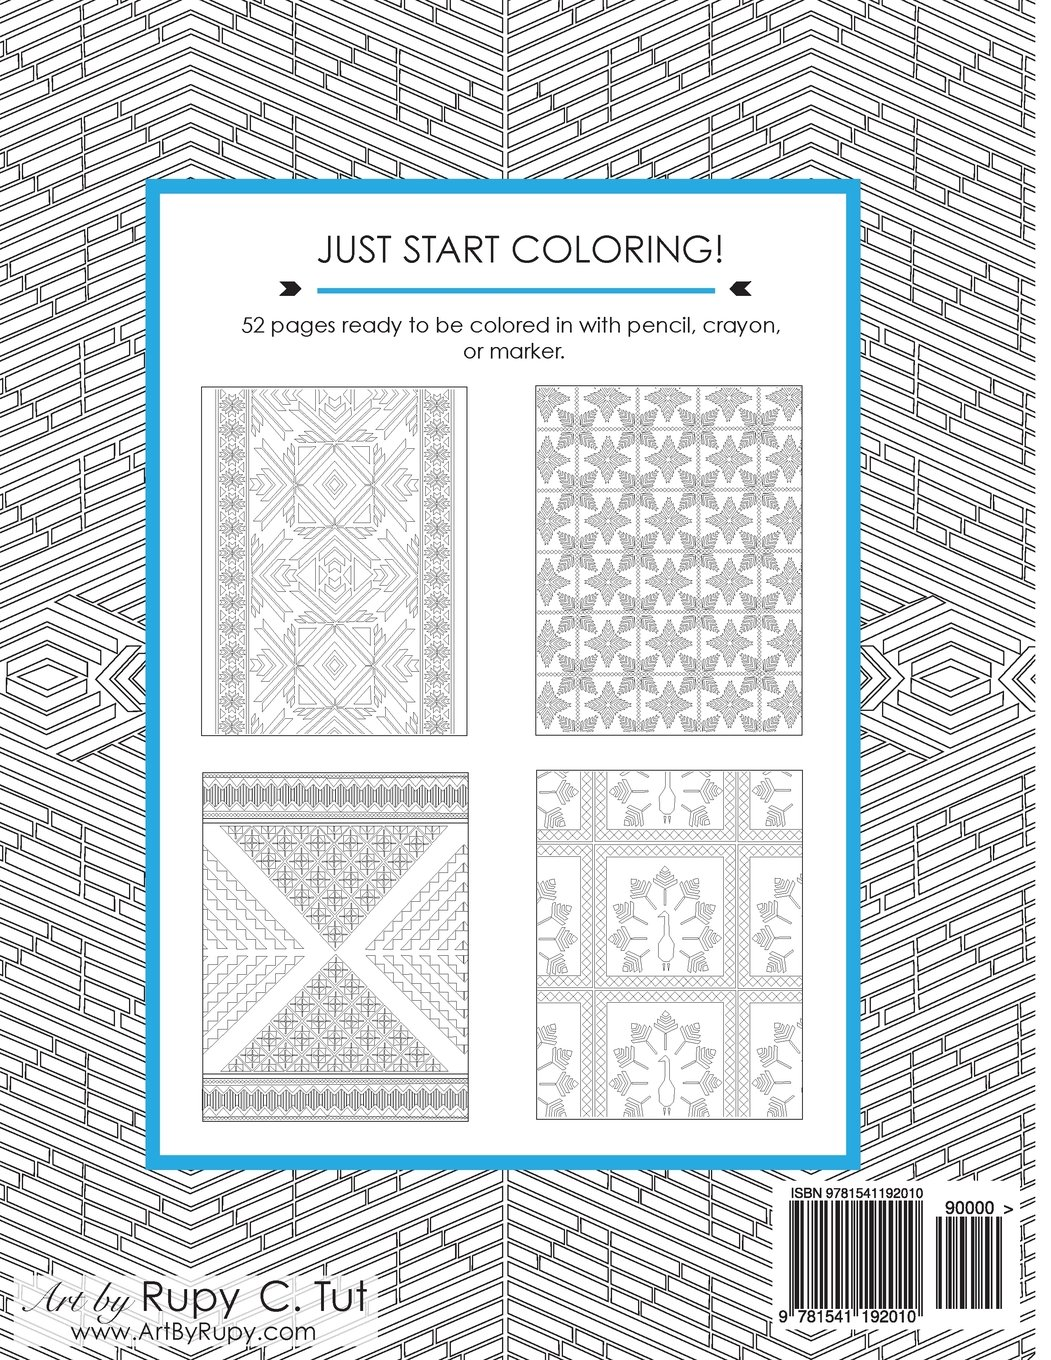 Amazon.com: Phulkari: An Adult Coloring Book of Stress Relieving ...